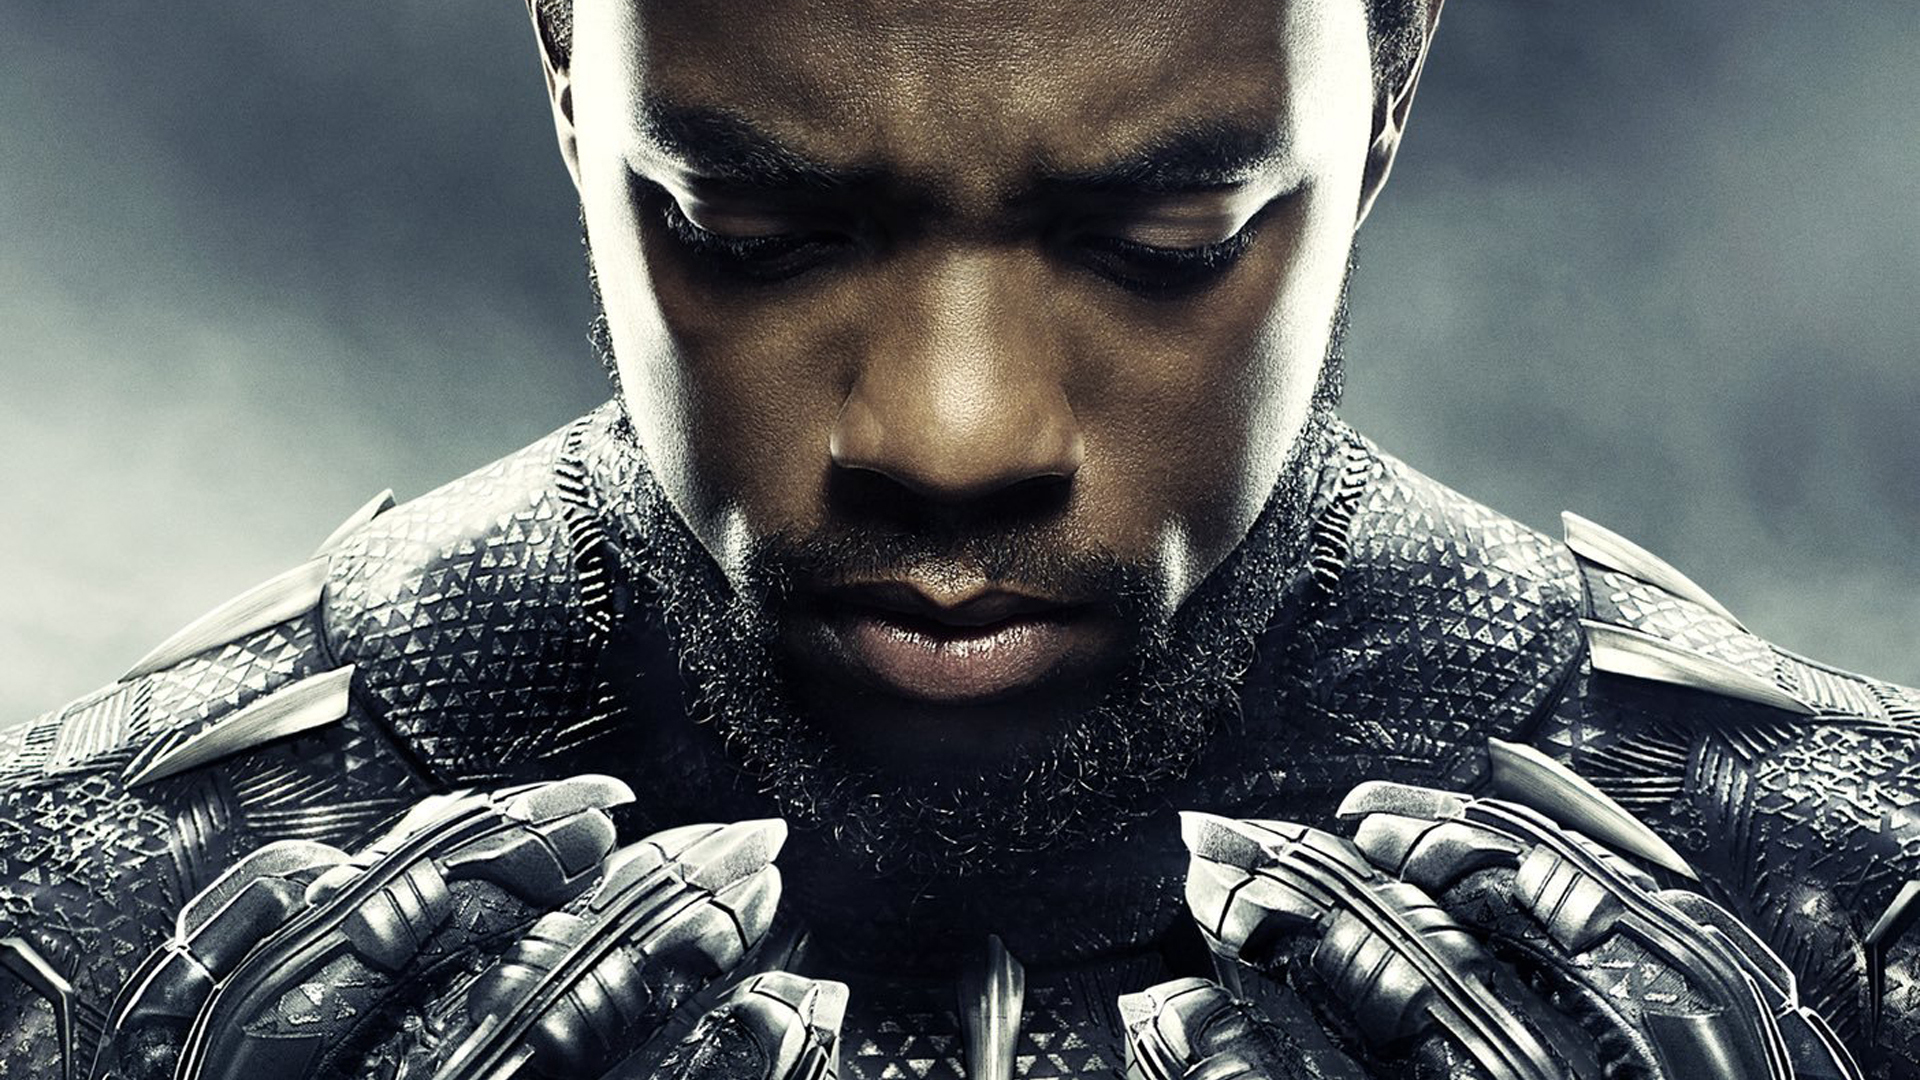 Chadwick Boseman In Black Panther Wallpaper Hd Movies 4k Wallpapers Images Photos And Background